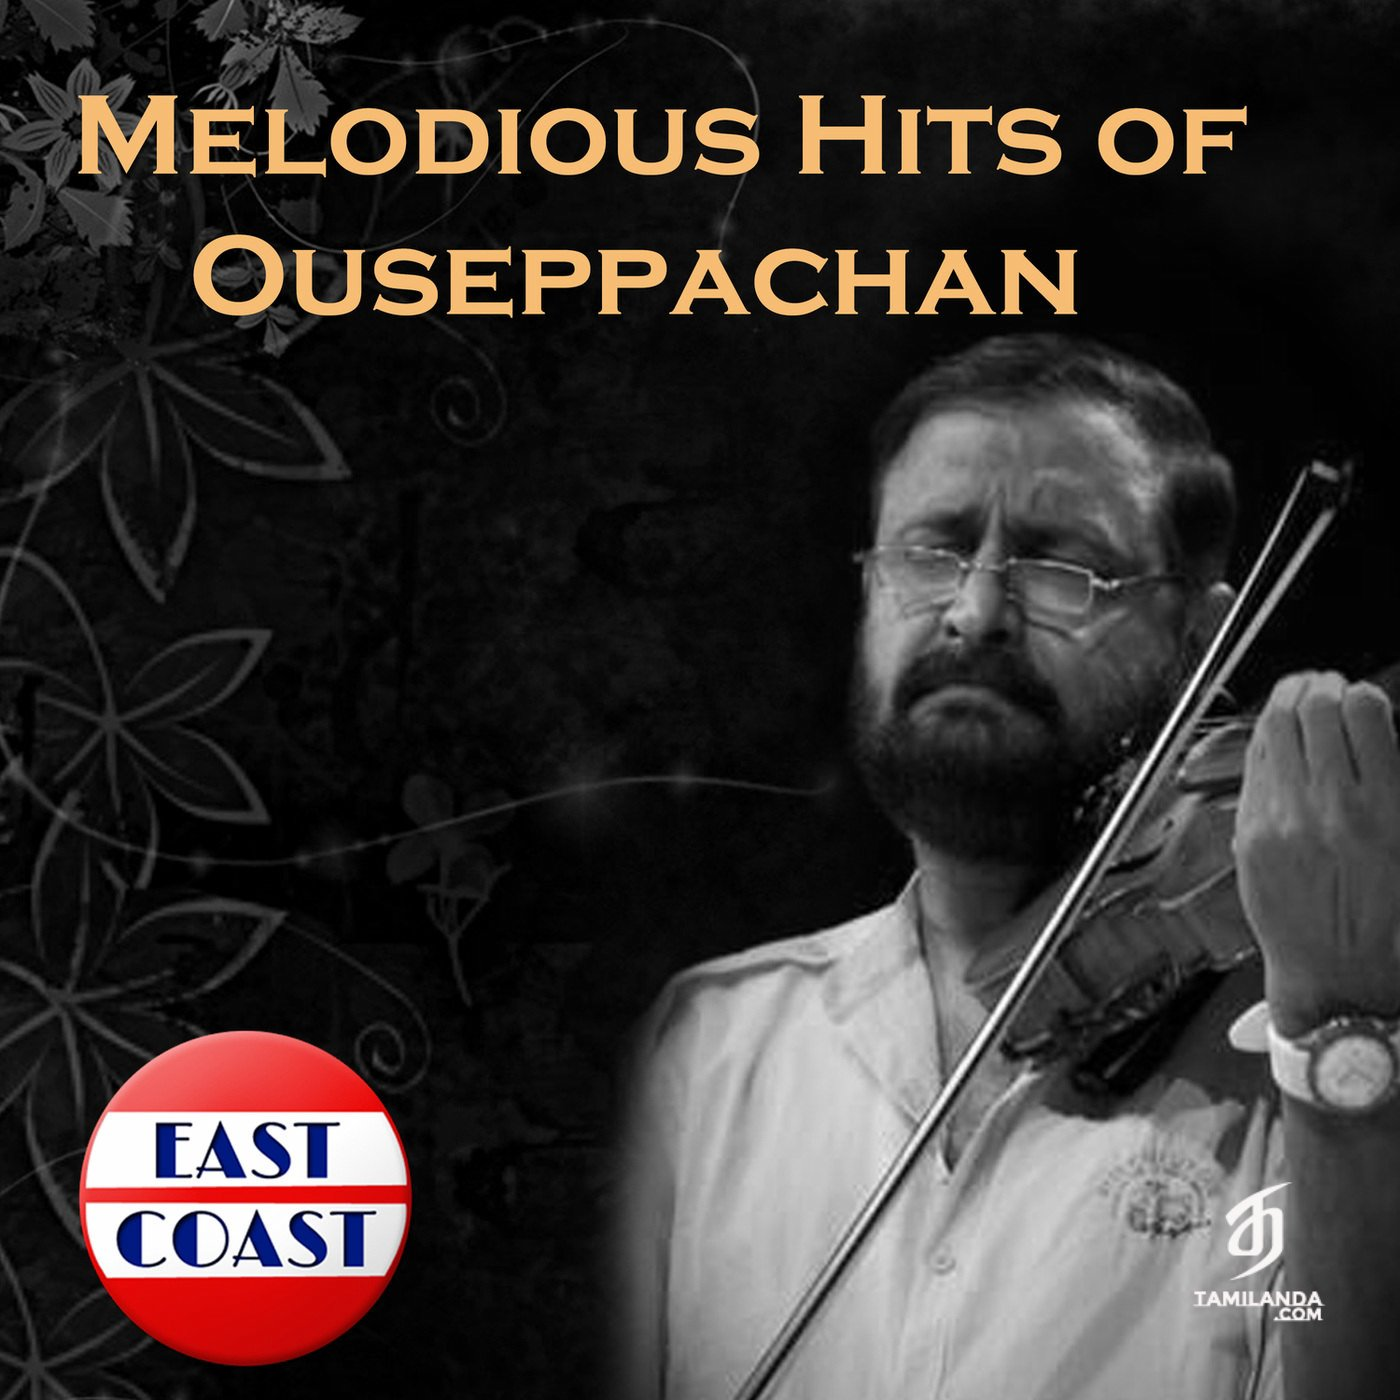 Melodious Hits of Ouseppachan 16 BIT FLAC Songs